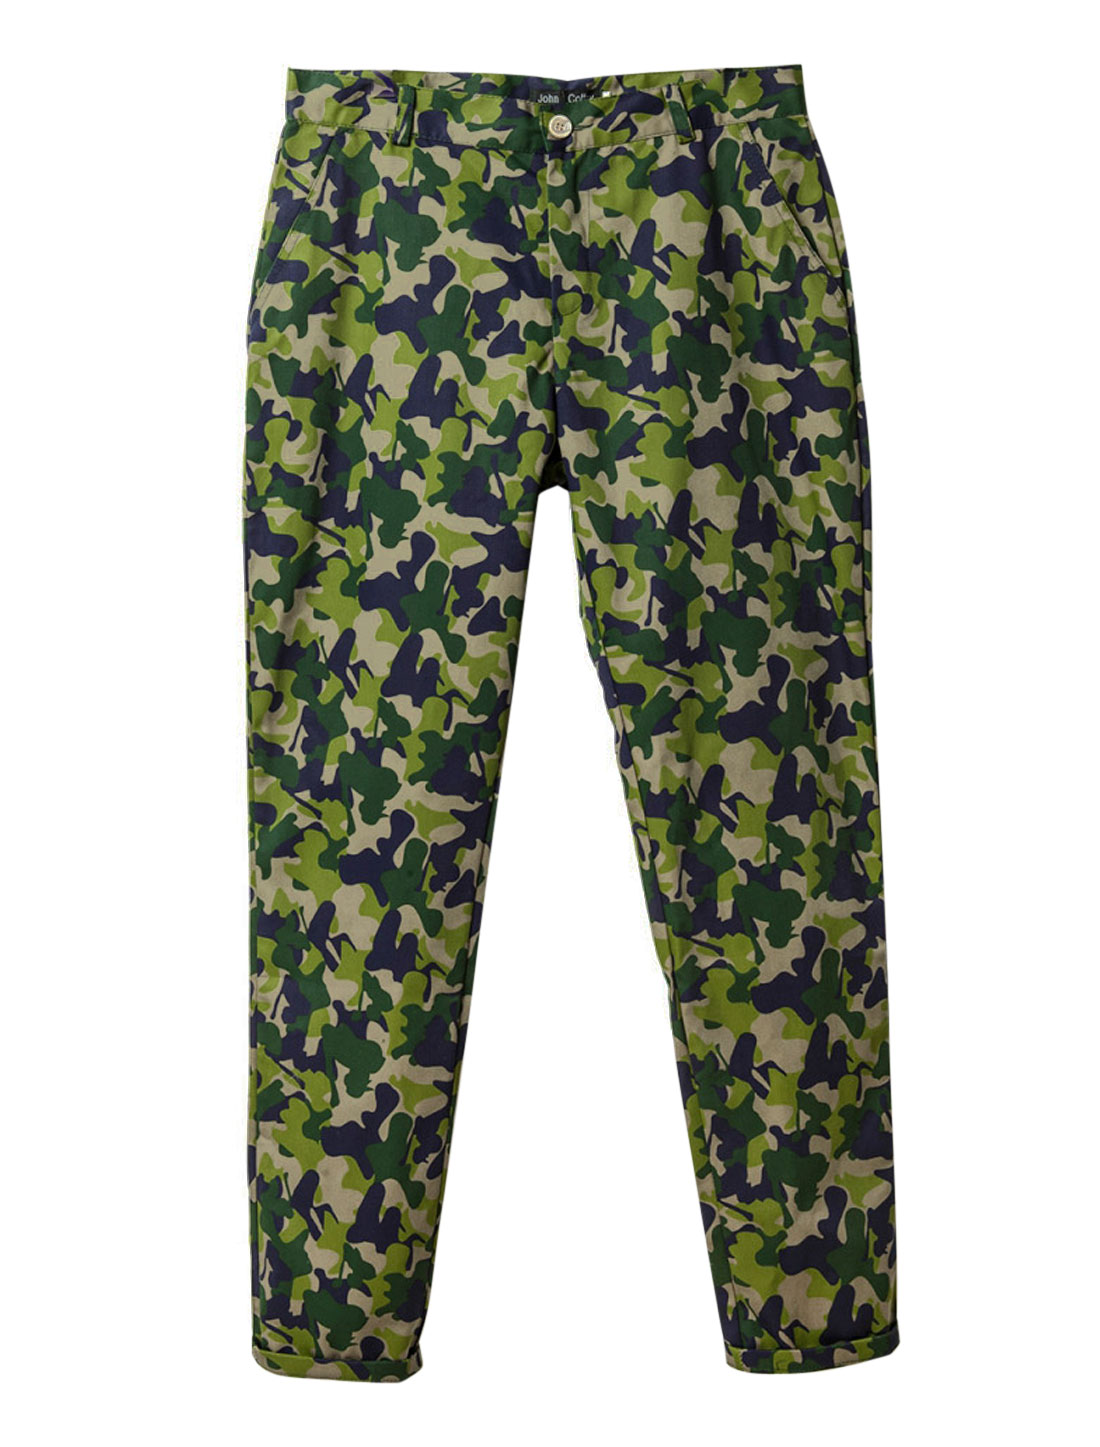 Men Camouflage Pattern One Button Zip Closure Chic Pants Green Navy Blue W28